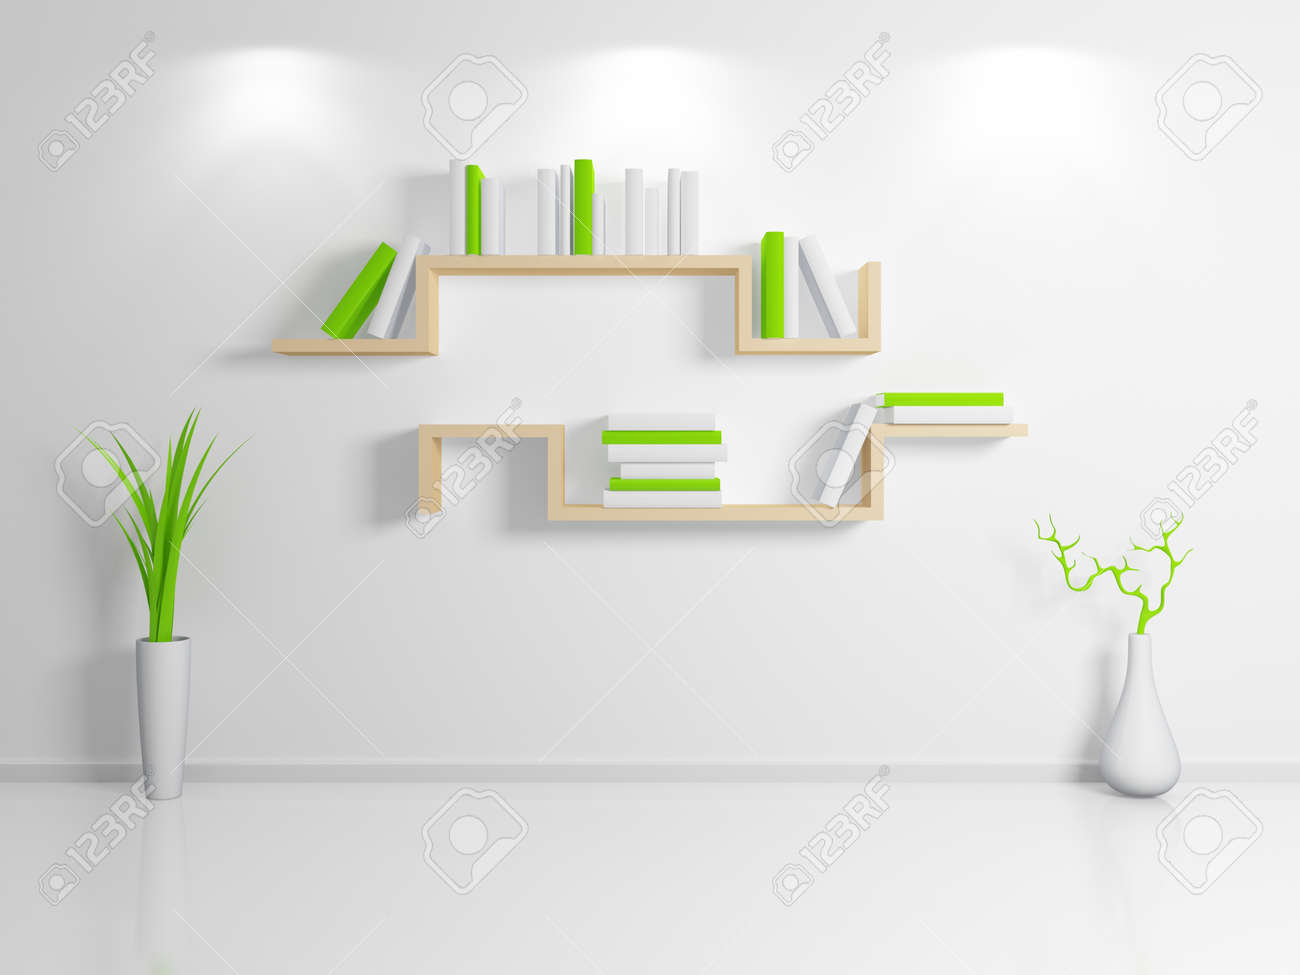 Modern Interior Composition With A Beige Bookshelf 3d Rendered Stock Photo